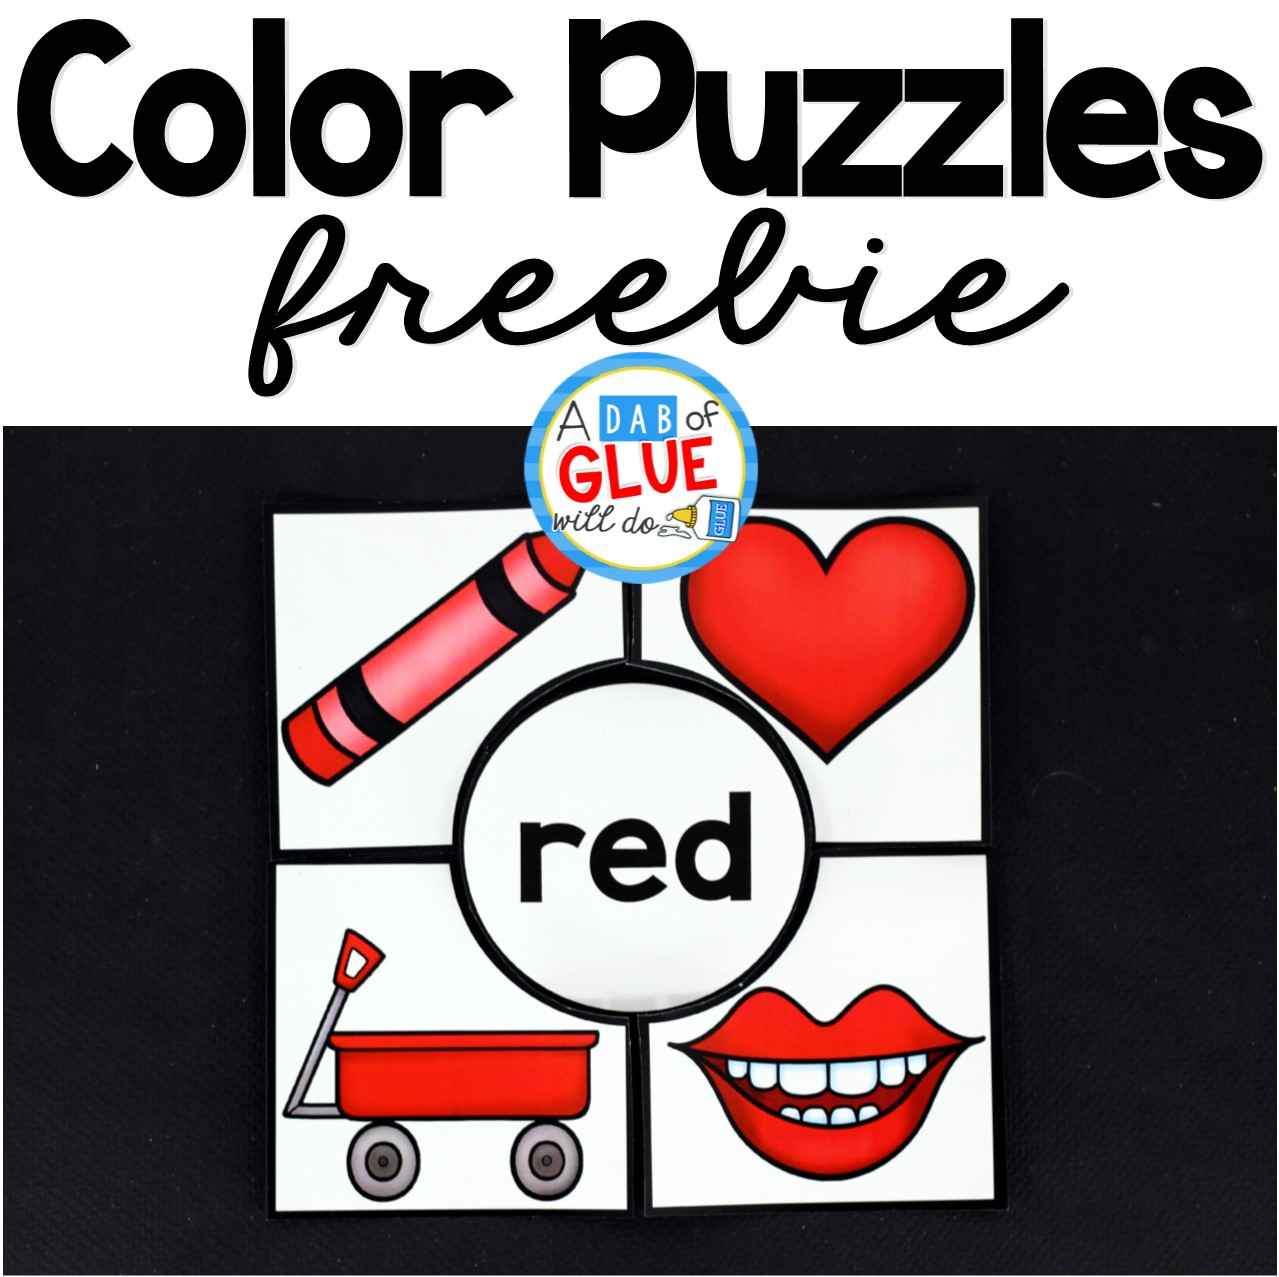 Color Puzzles - A Dab of Glue Will Do